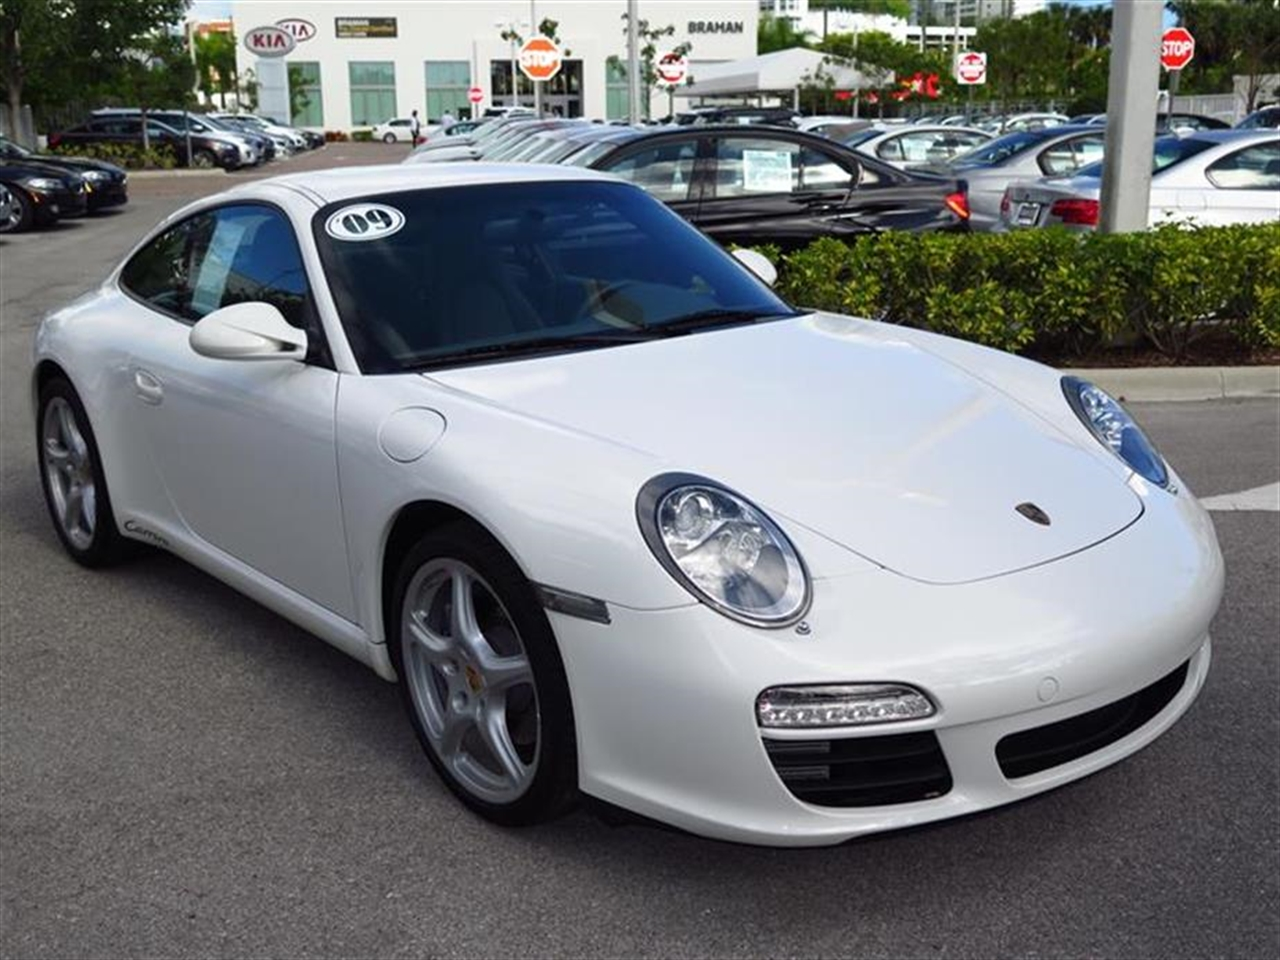 2009 PORSCHE 911 2dr Cpe Carrera 8187 miles 2  2 Seating 3-spoke leather-wrapped tilttelescopic